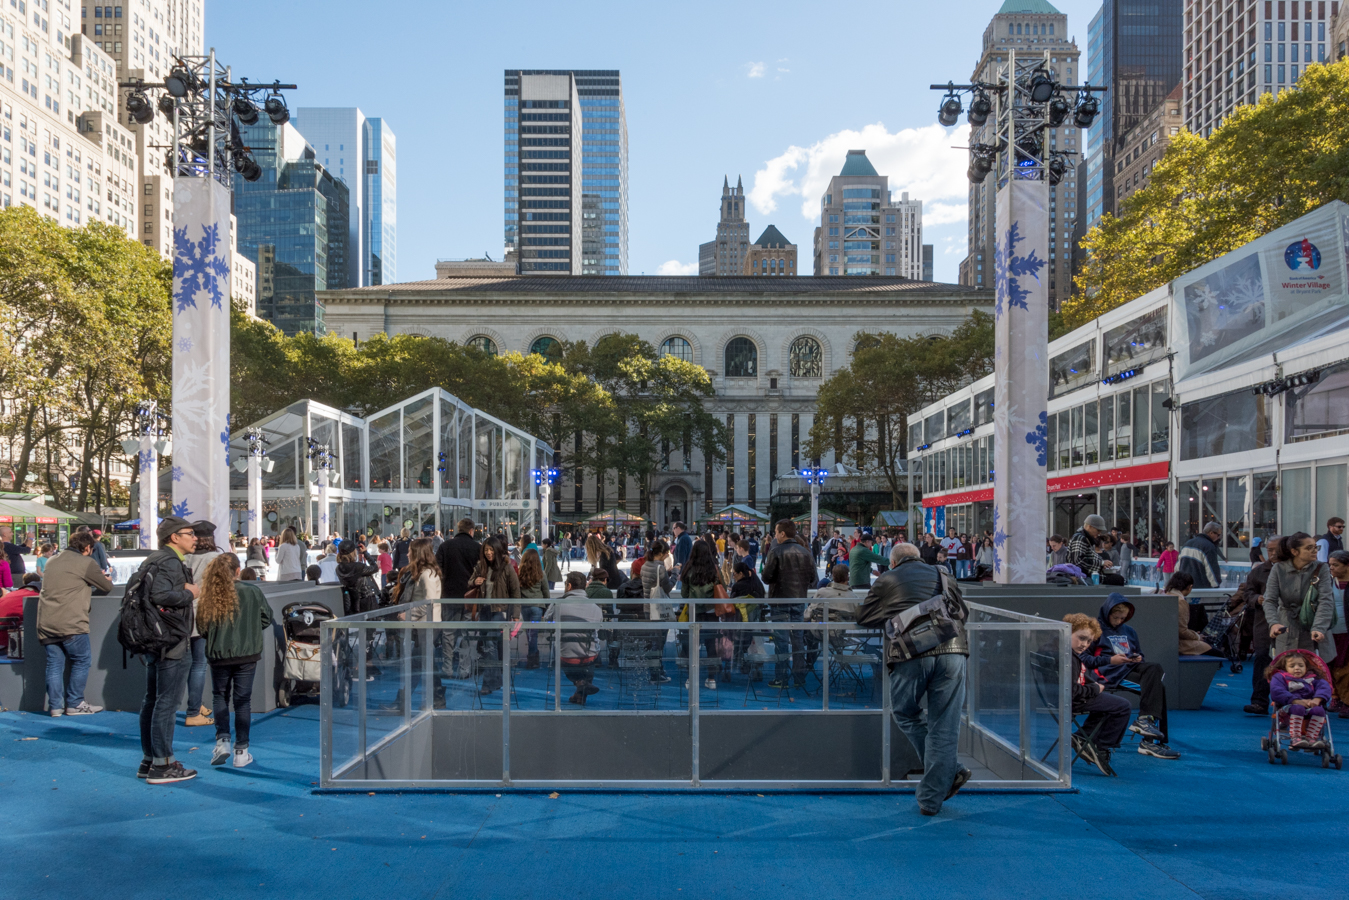 Rock Mama NYC Lifestyle blog-The Best Holiday Market To Go With Your Child In NYC - Bryant Park